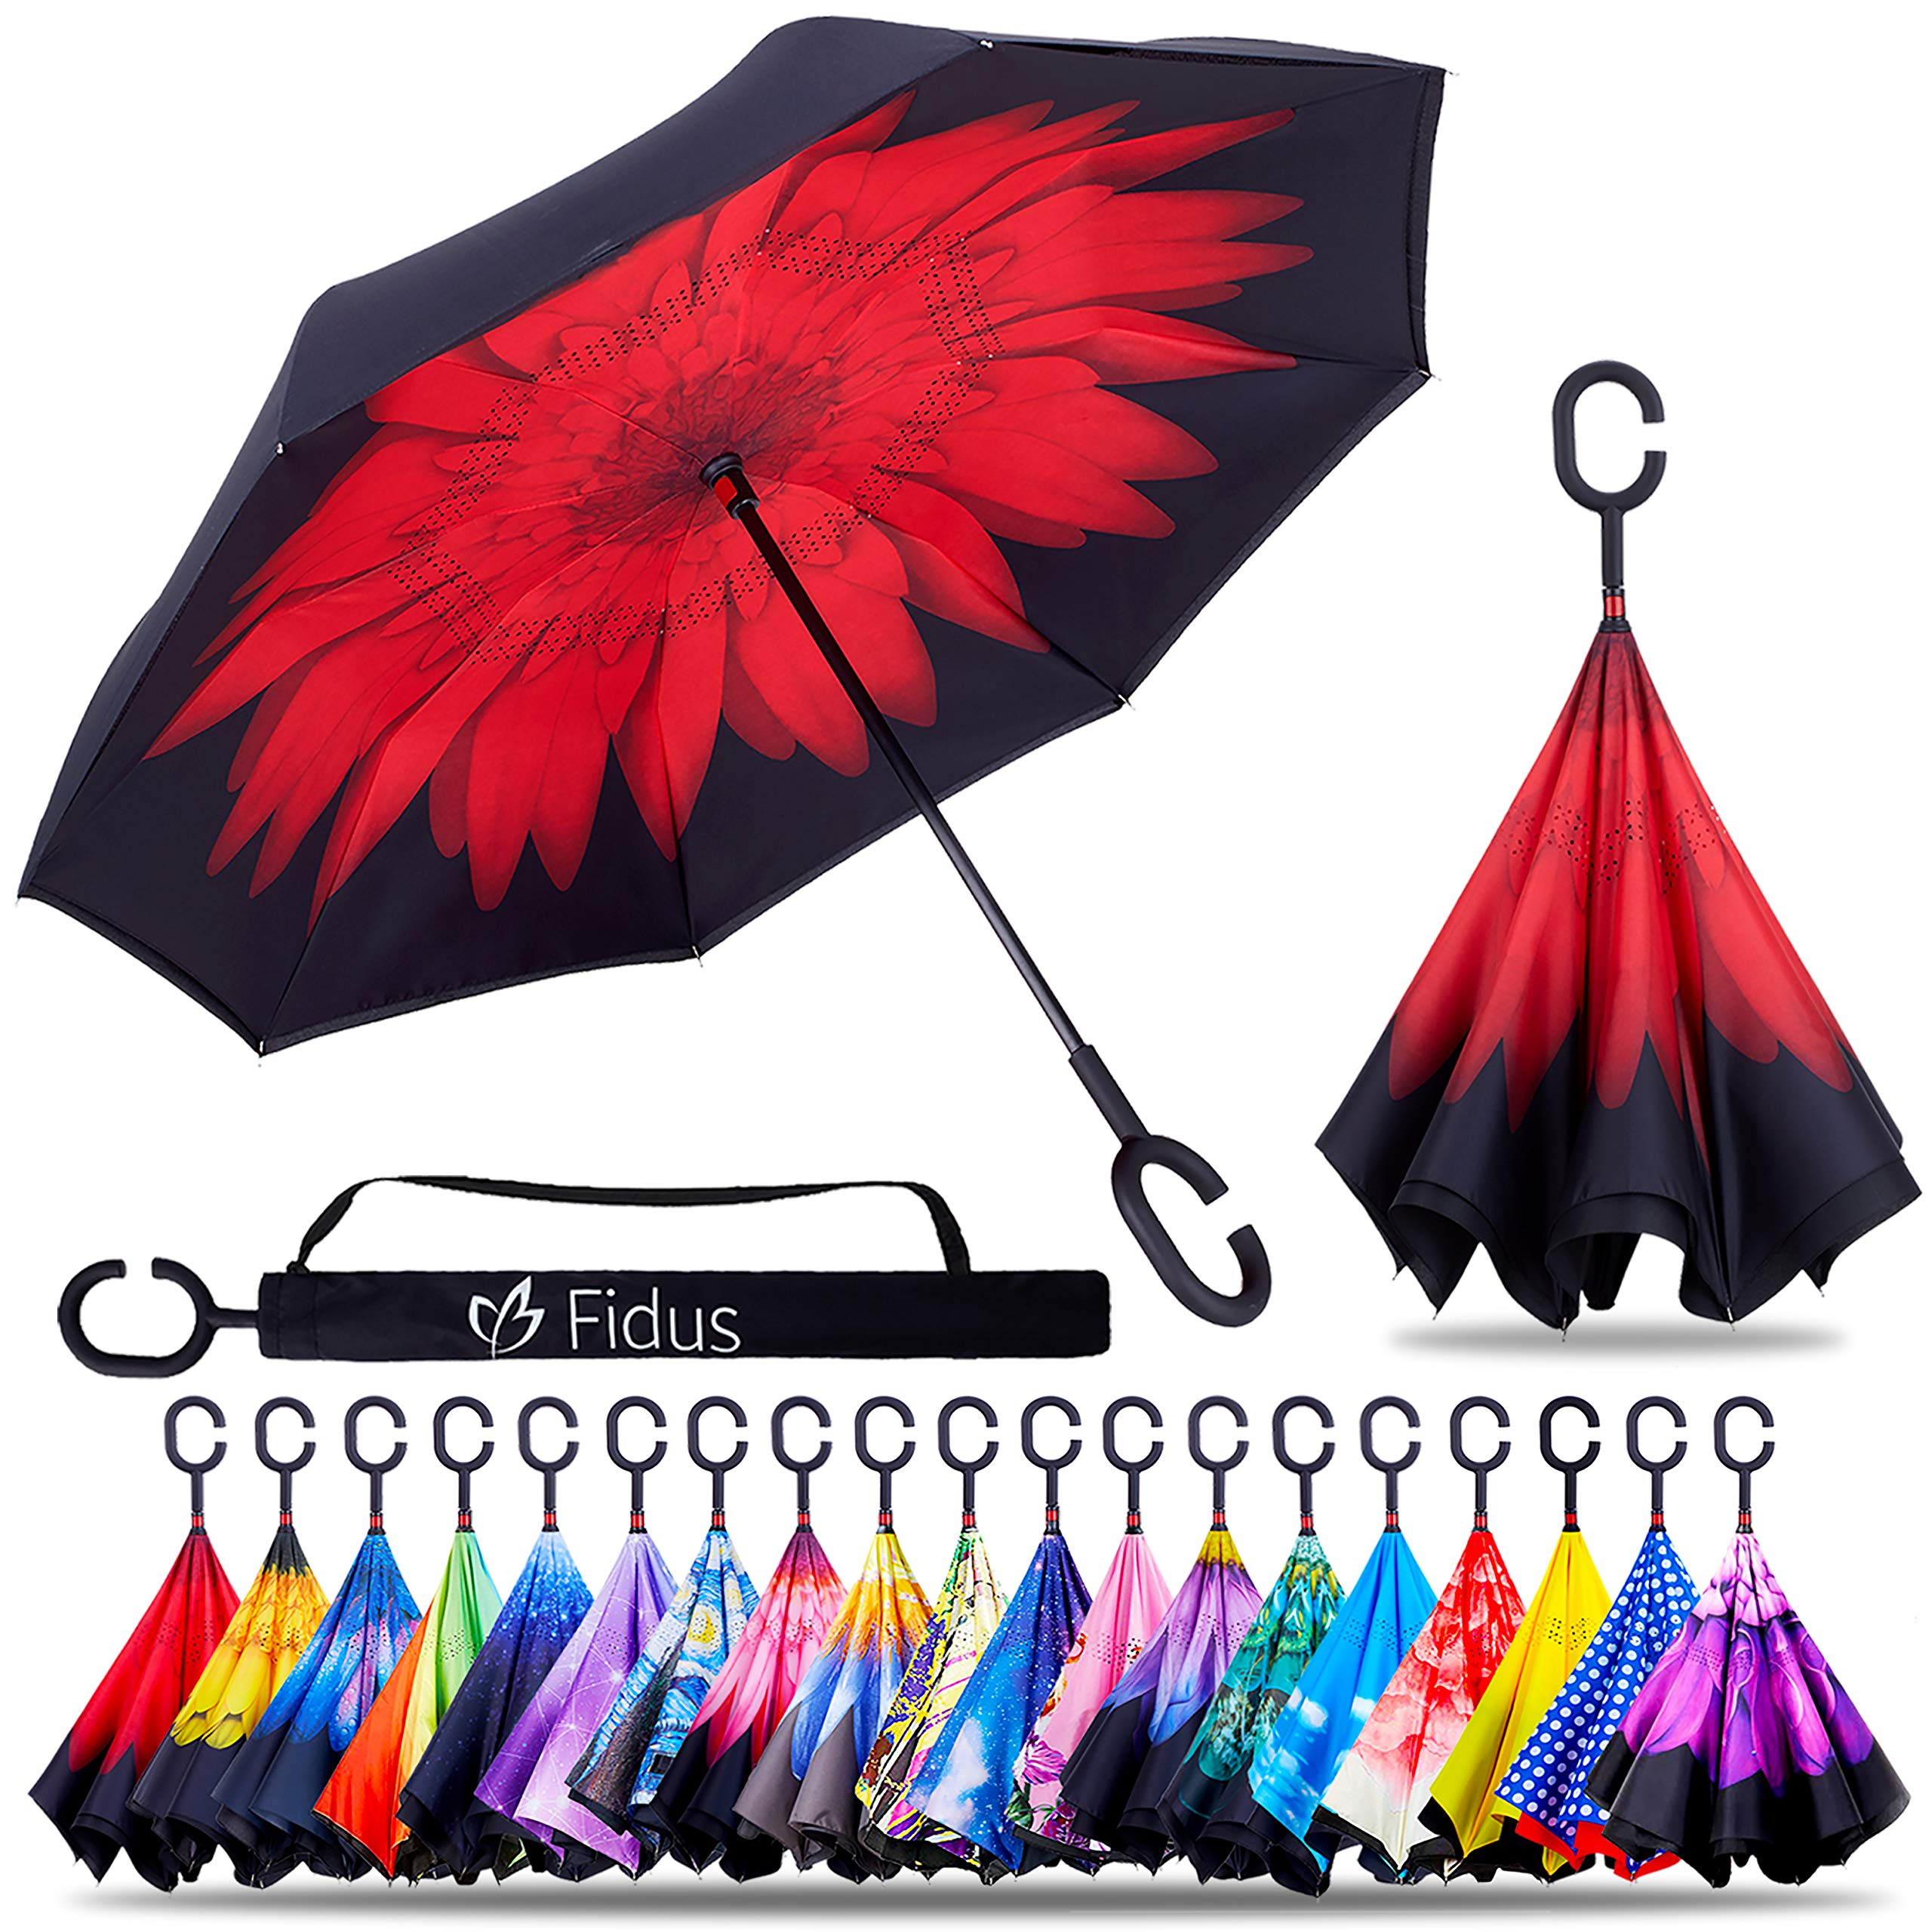 Fidus Double Layer Inverted Reverse Umbrella, Winproof Waterproof Folding UV Protection Self Stand Upside Down Large Car Rain Golf Outdoor Rain Umbrella with C-Shaped Handle for Men Women(Red Rose)